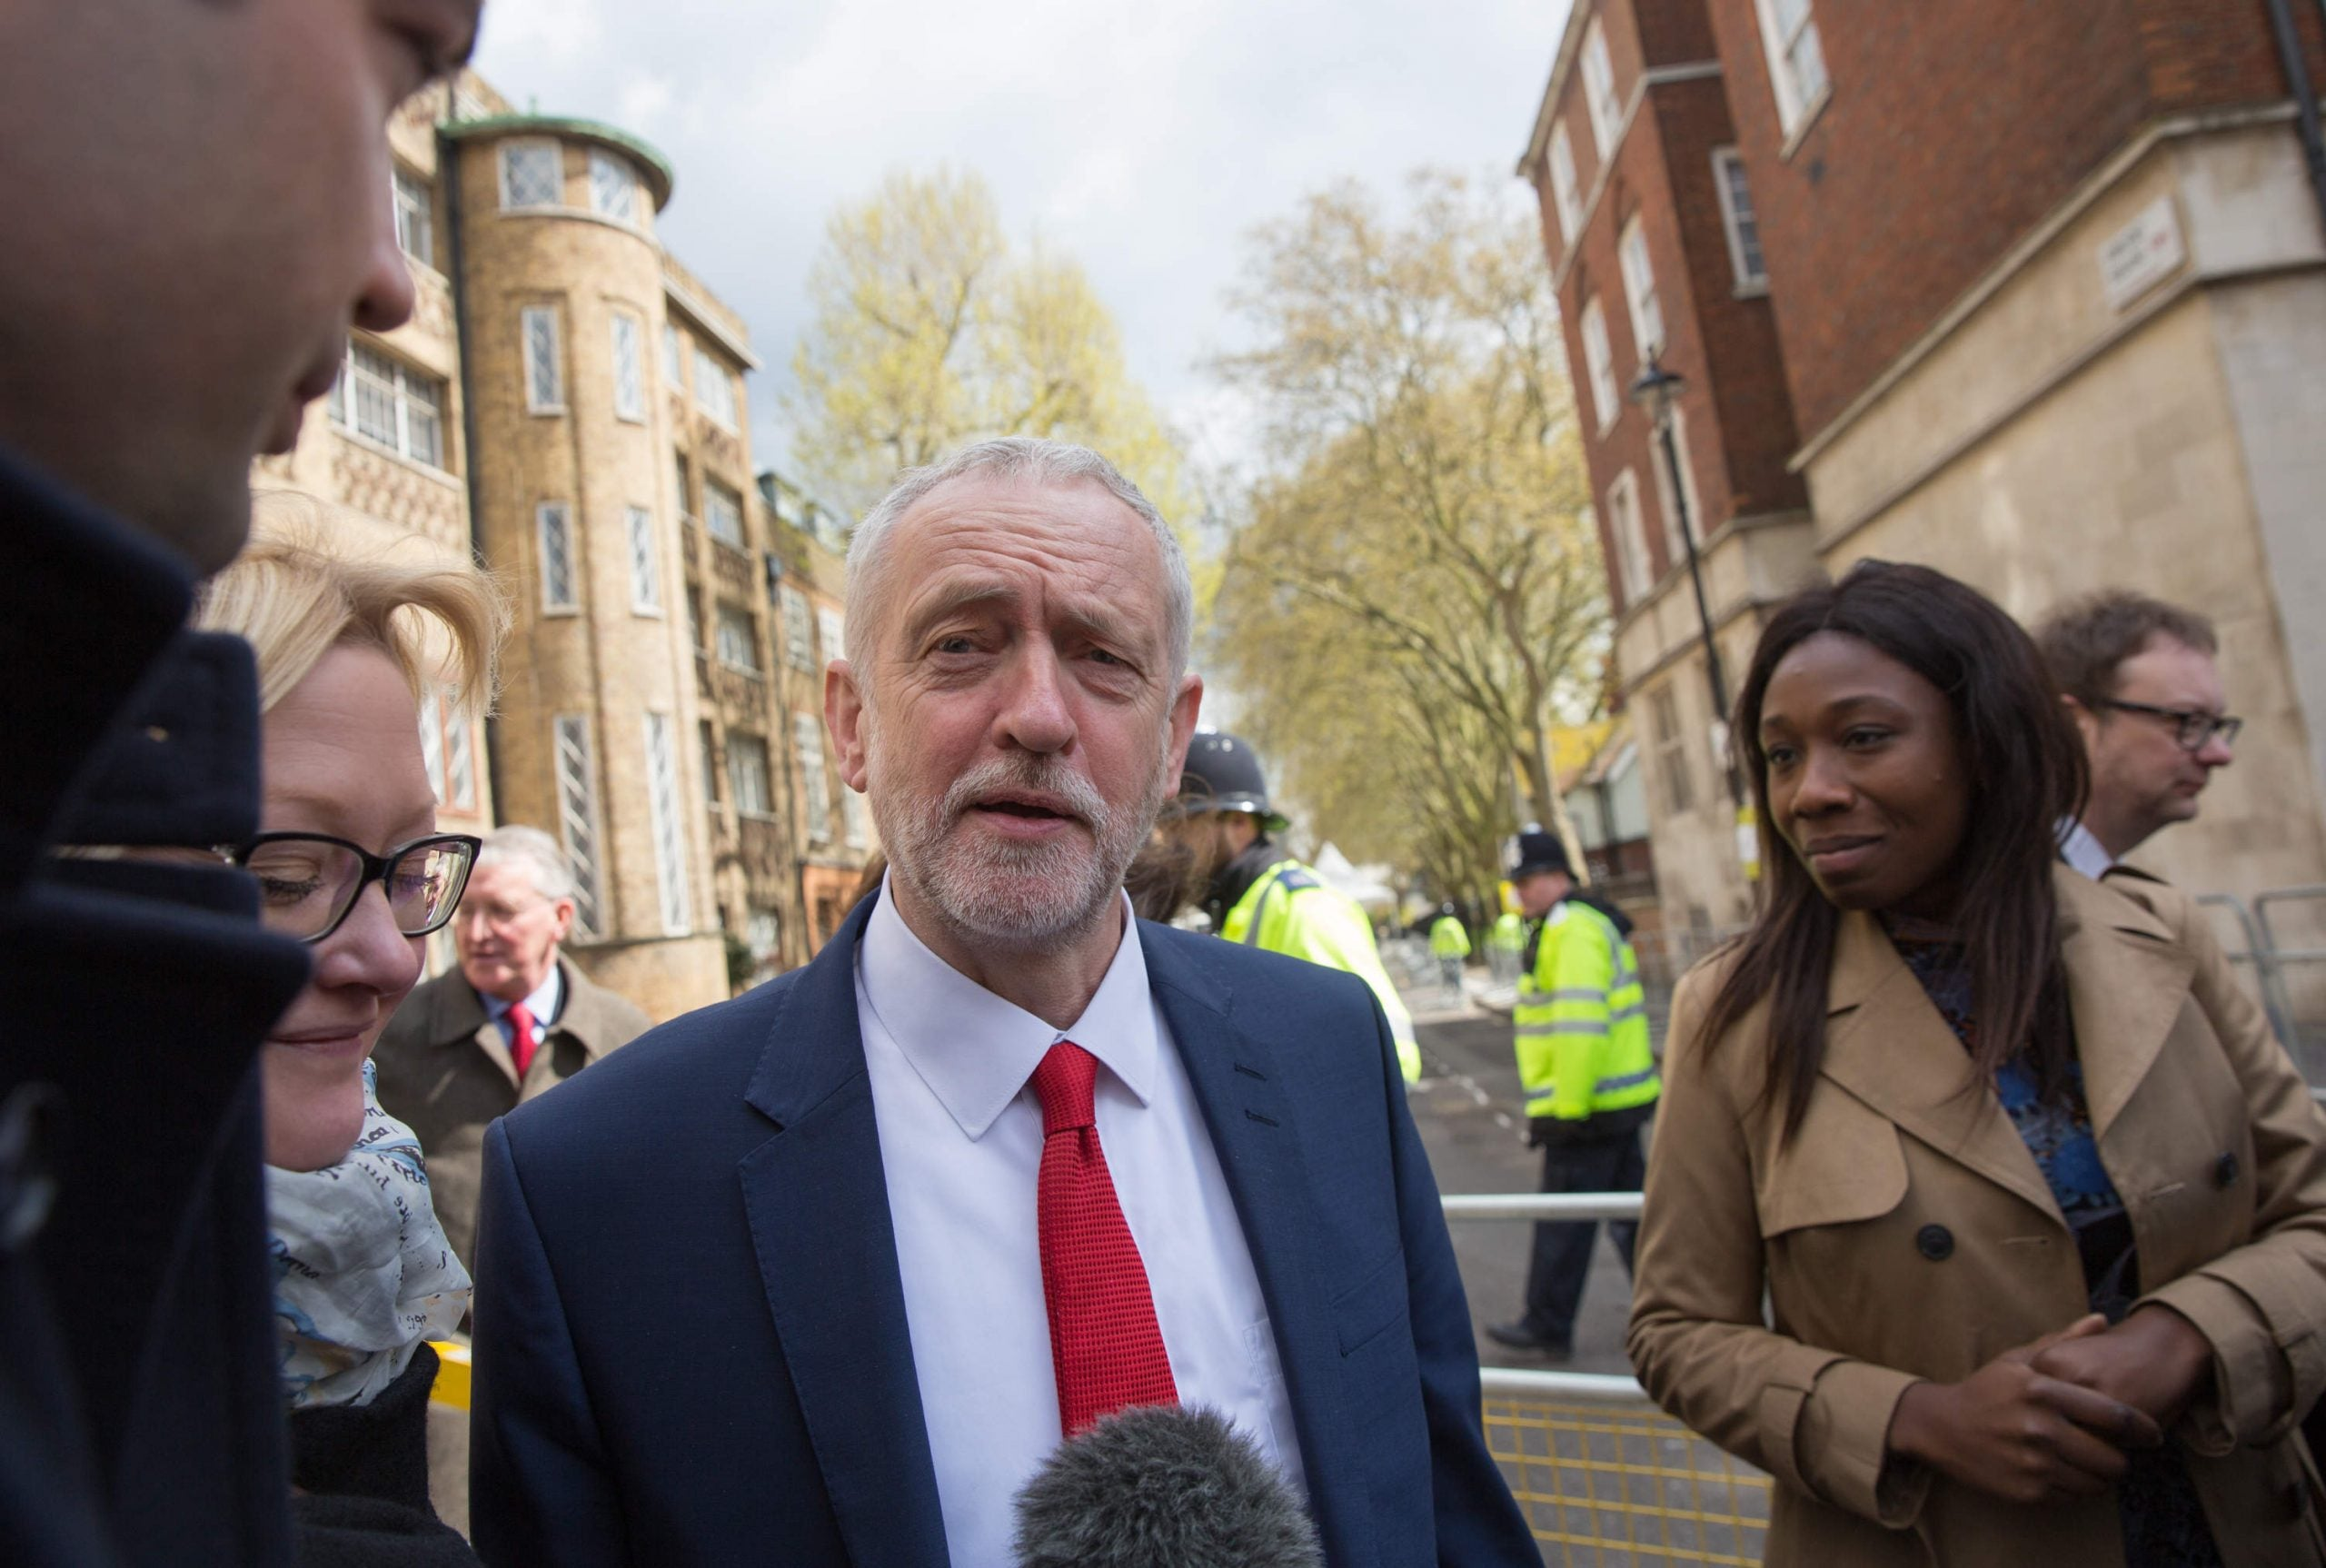 Commons Confidential: When Corbyn met Obama